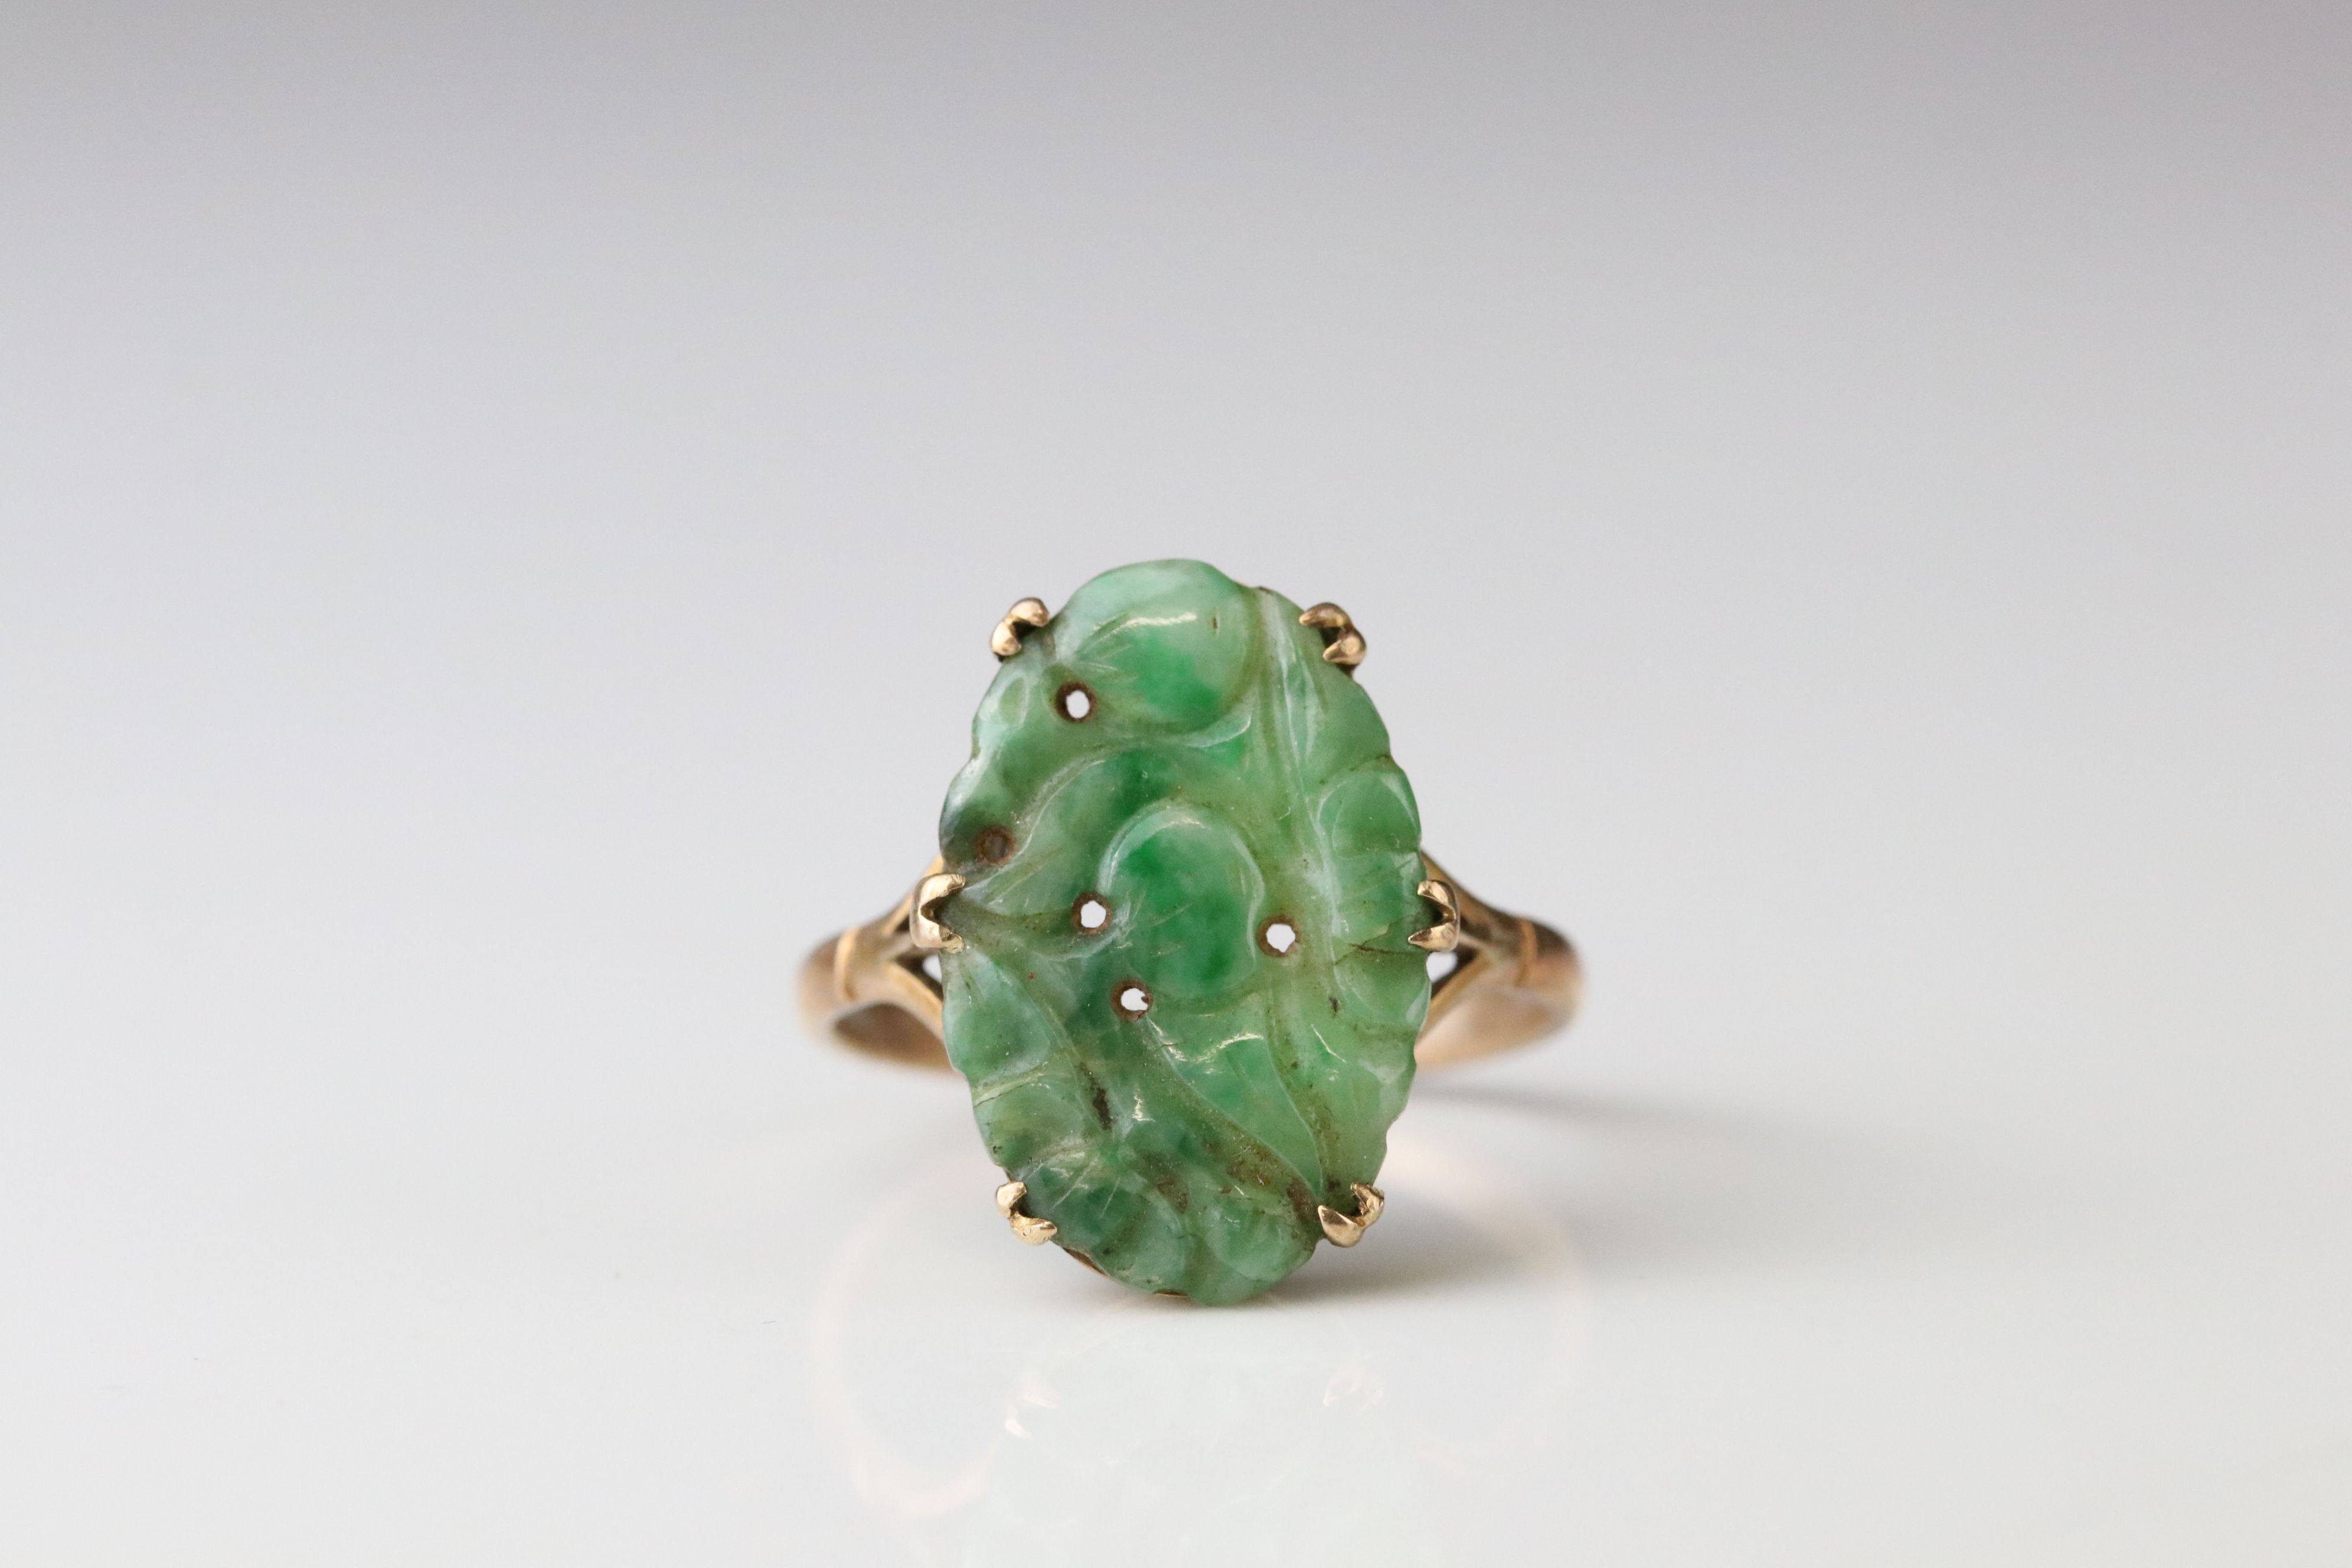 Carved jade 9ct yellow gold ring, the oval pierced carved jade measuring approx 18mm x 11.5mm, - Image 3 of 5